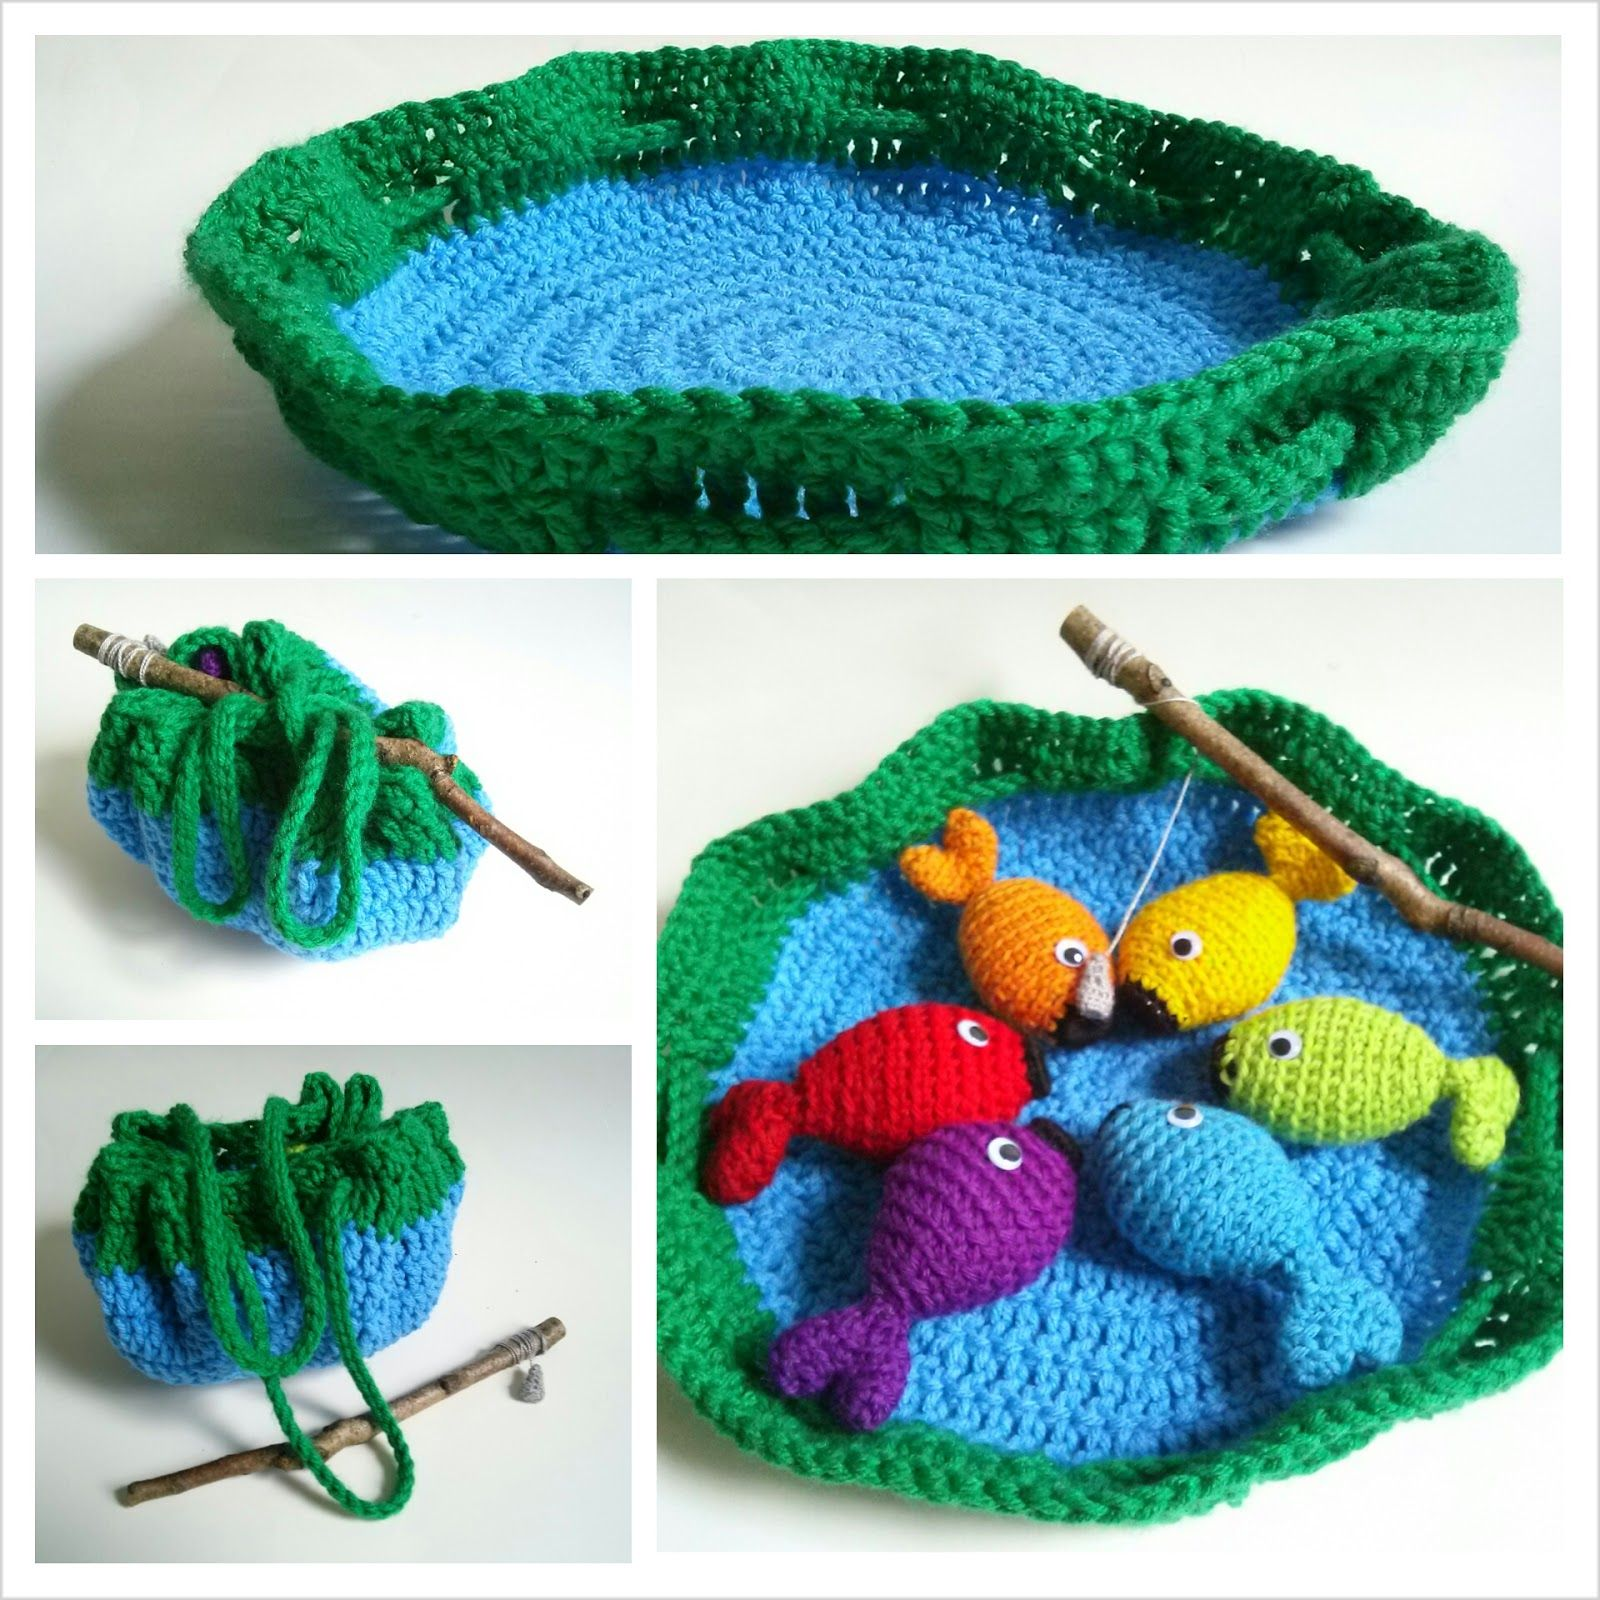 Gift Ideas to Crochet & Knit Crochet fish, Crochet game